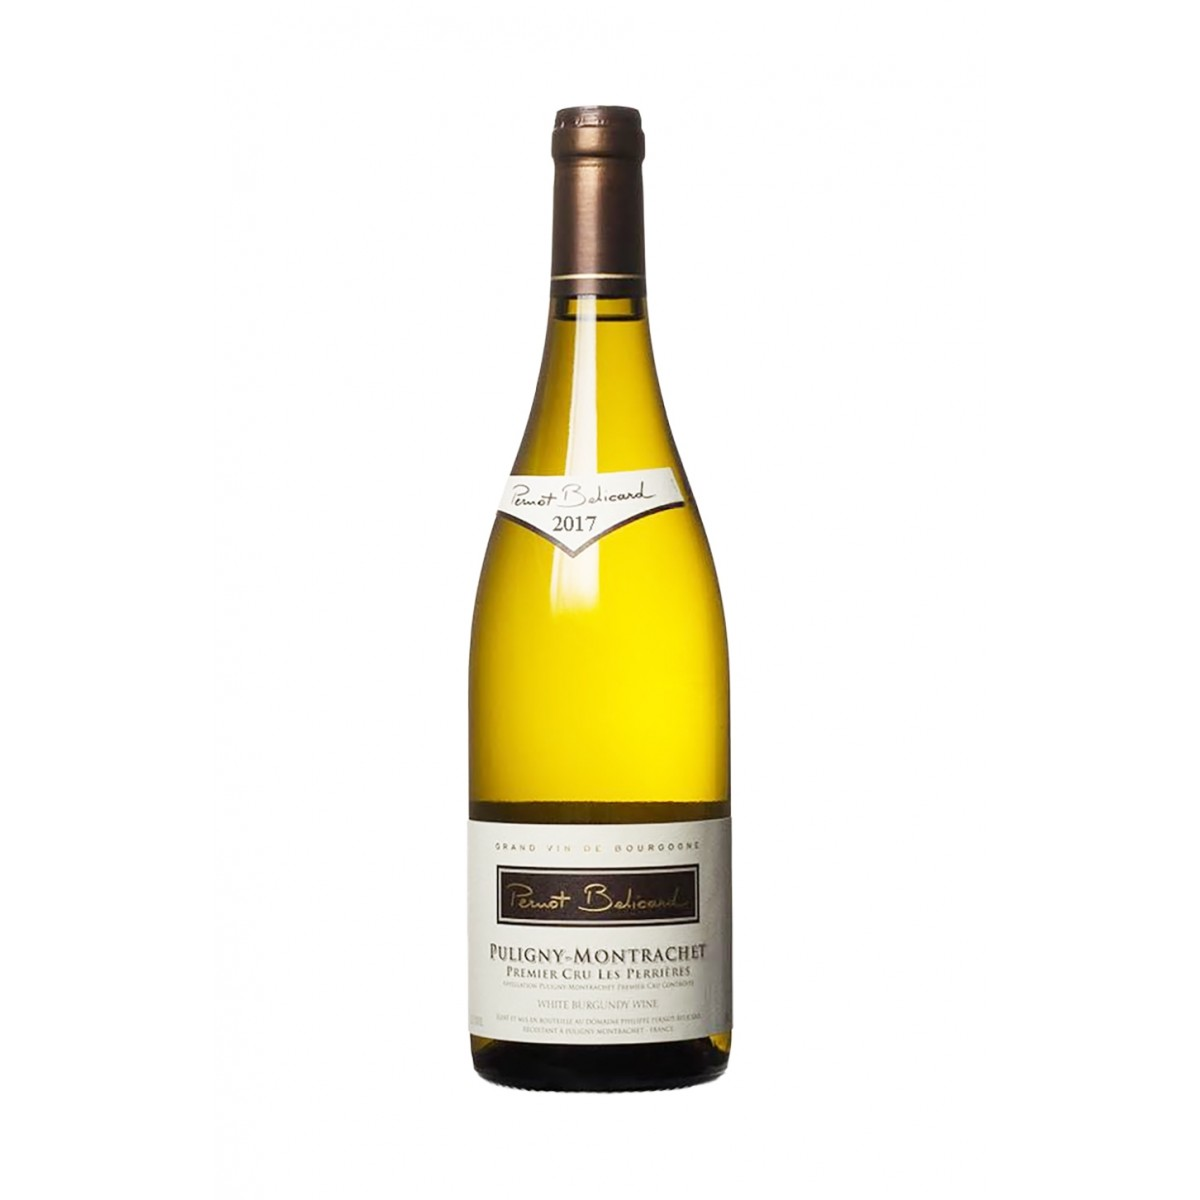 Puligny Montrachet 1er Cru Les Perrieres 2017 - Domaine Pernot Belicard